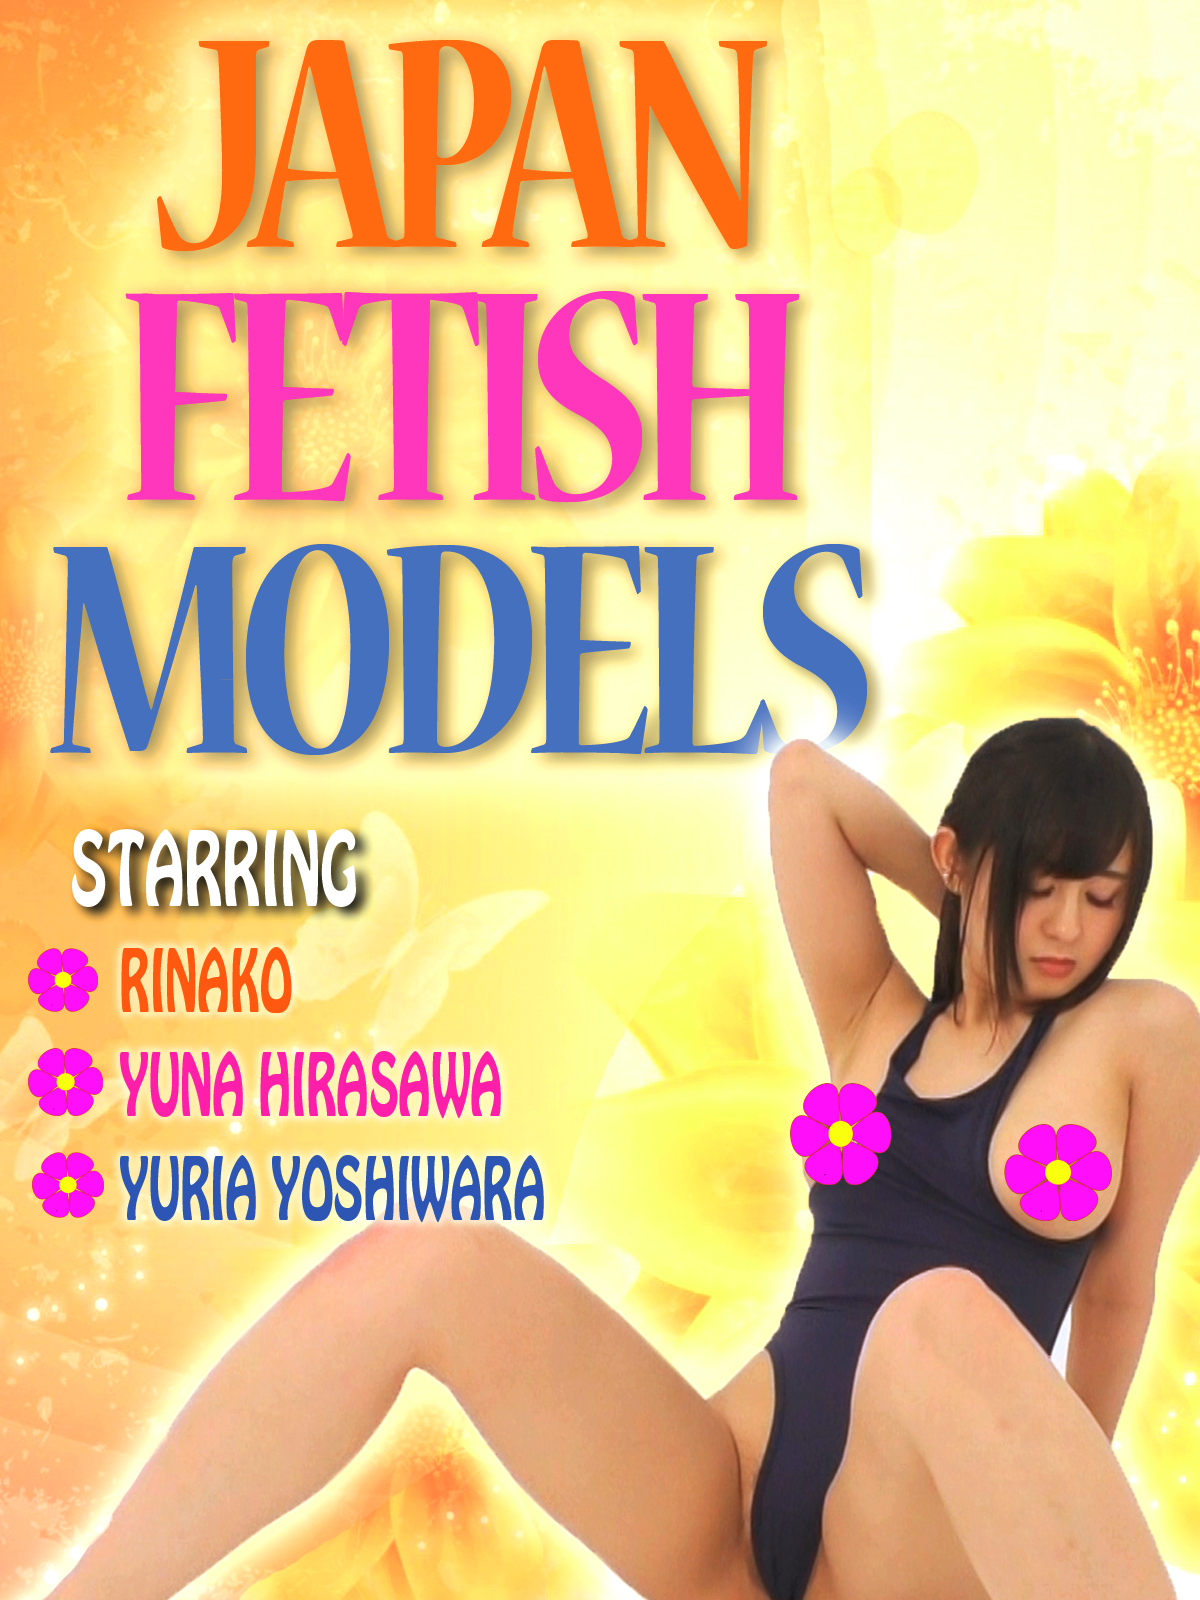 Japan Fetish Models -HD- DOWNLOAD TO OWN